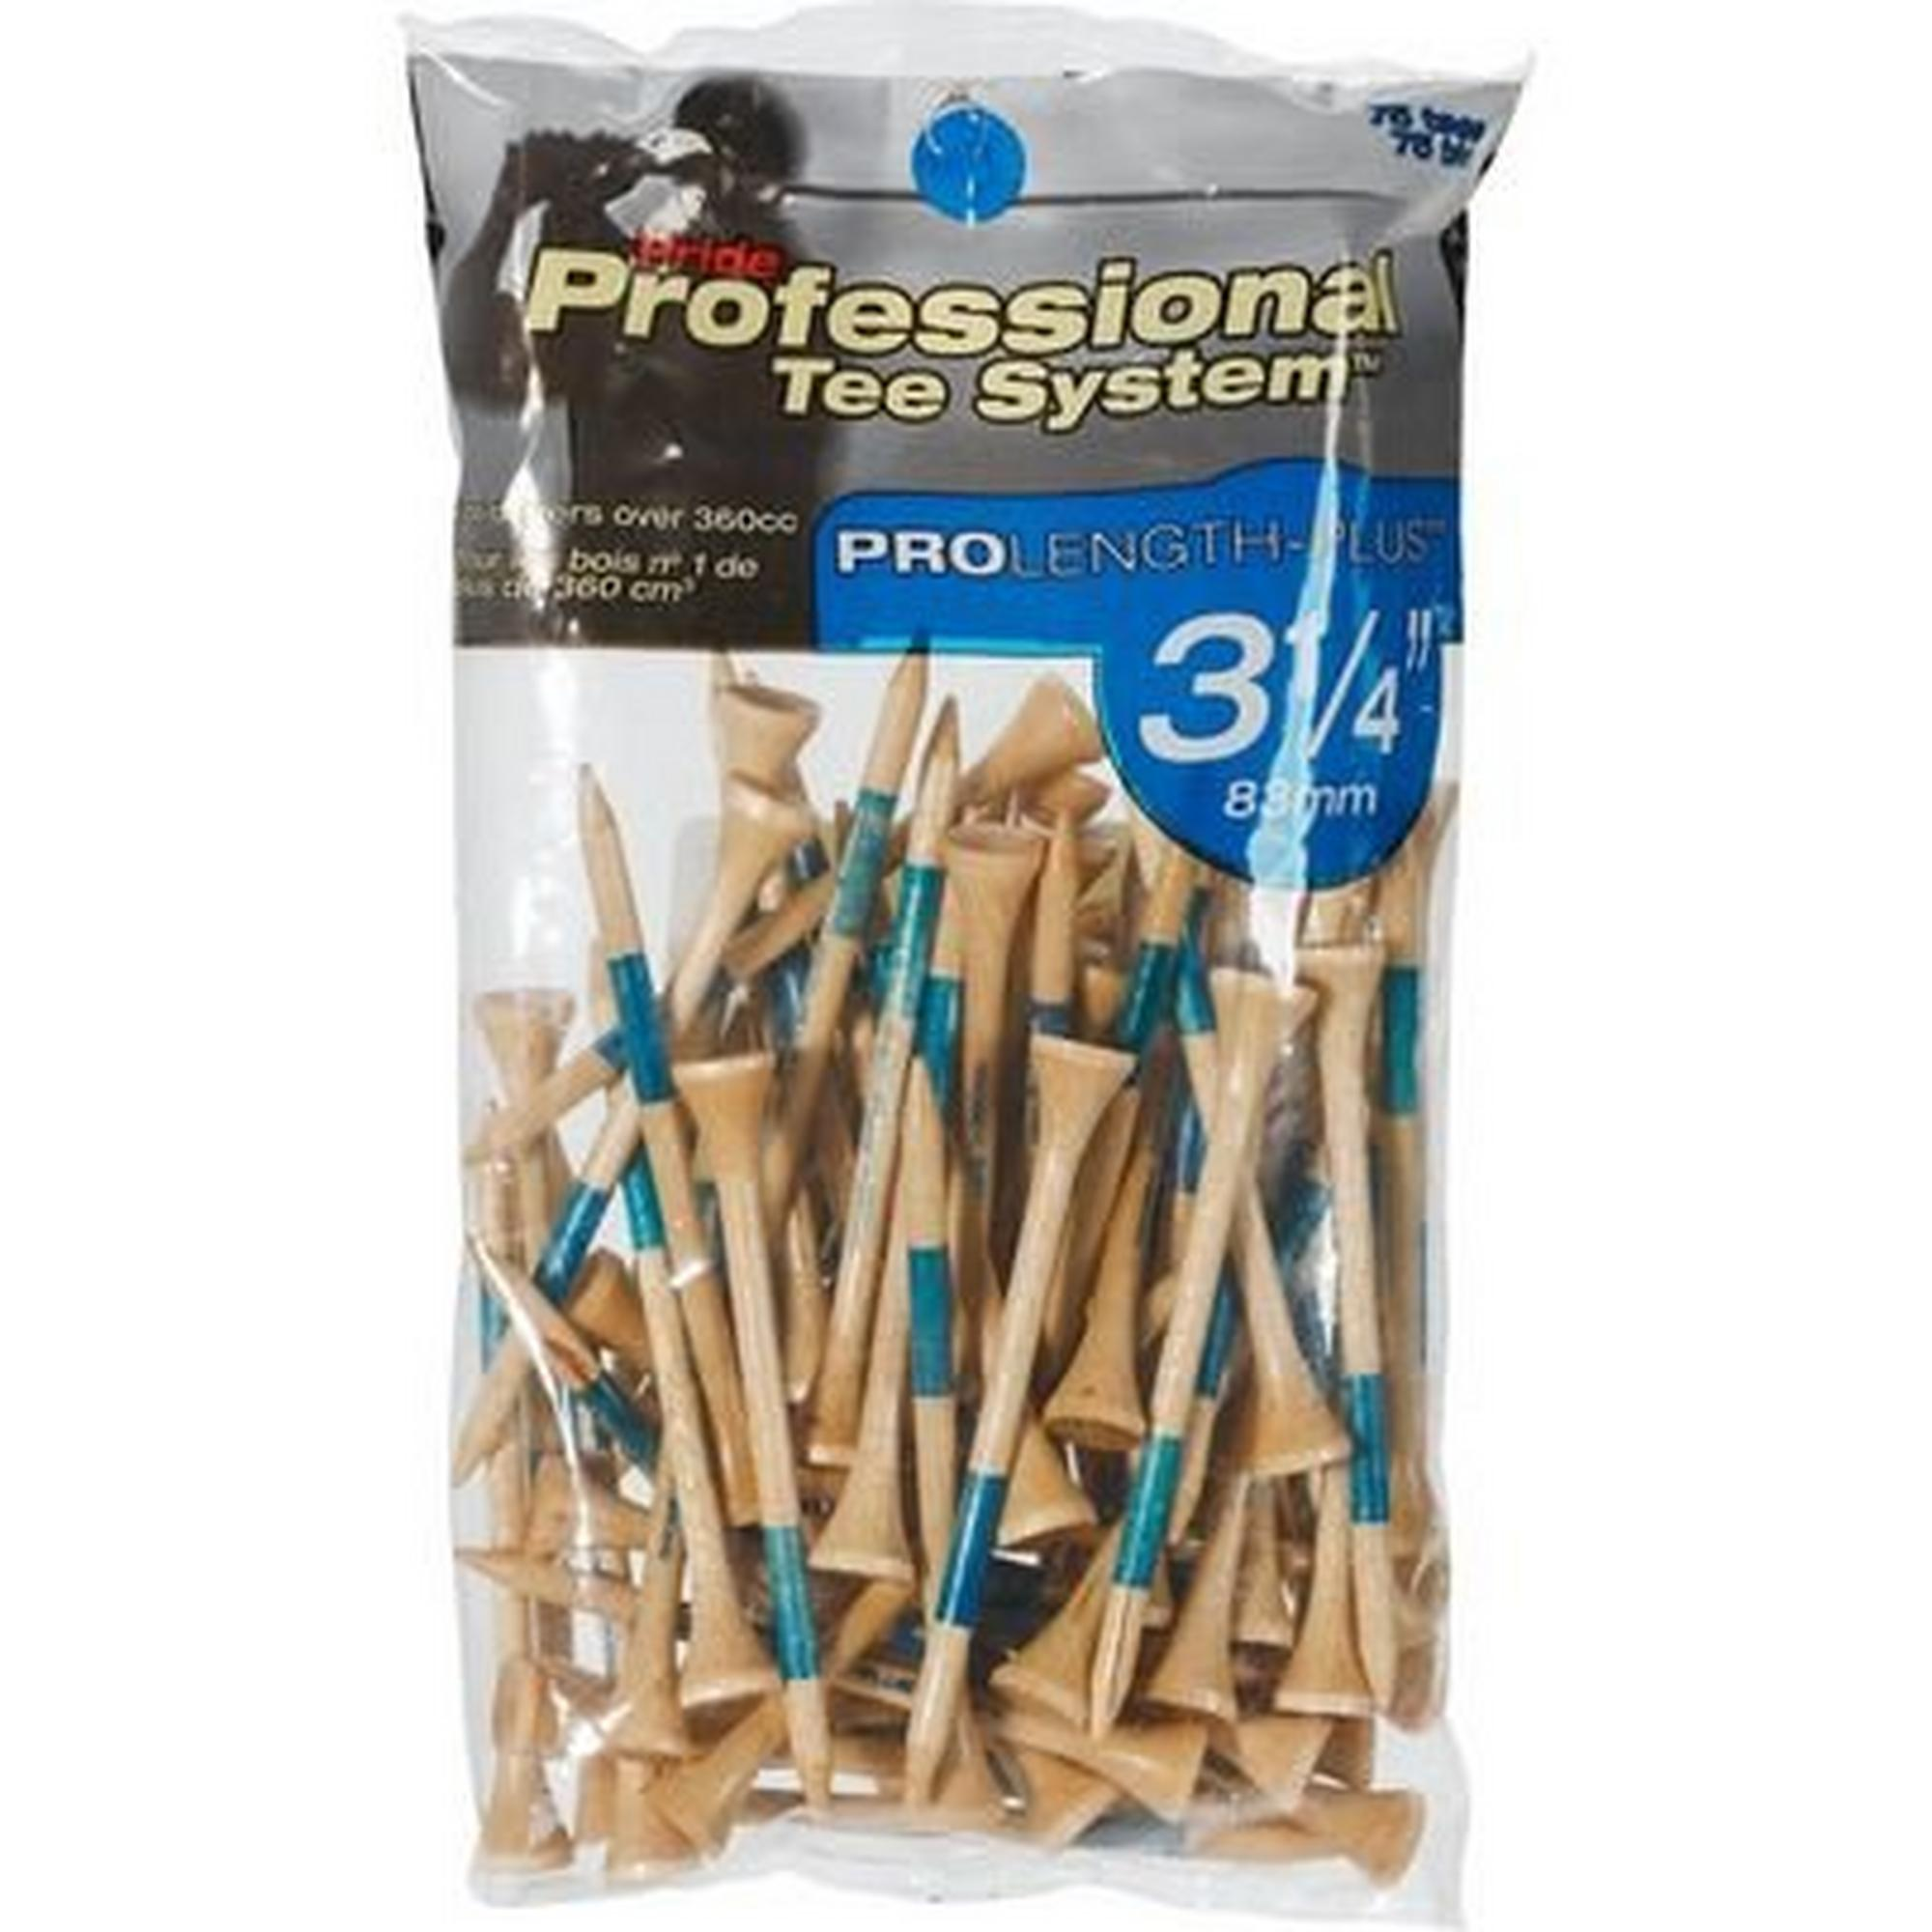 Prolength Plus 3 1/4 Inch Natural Golf Tees (75 Count)